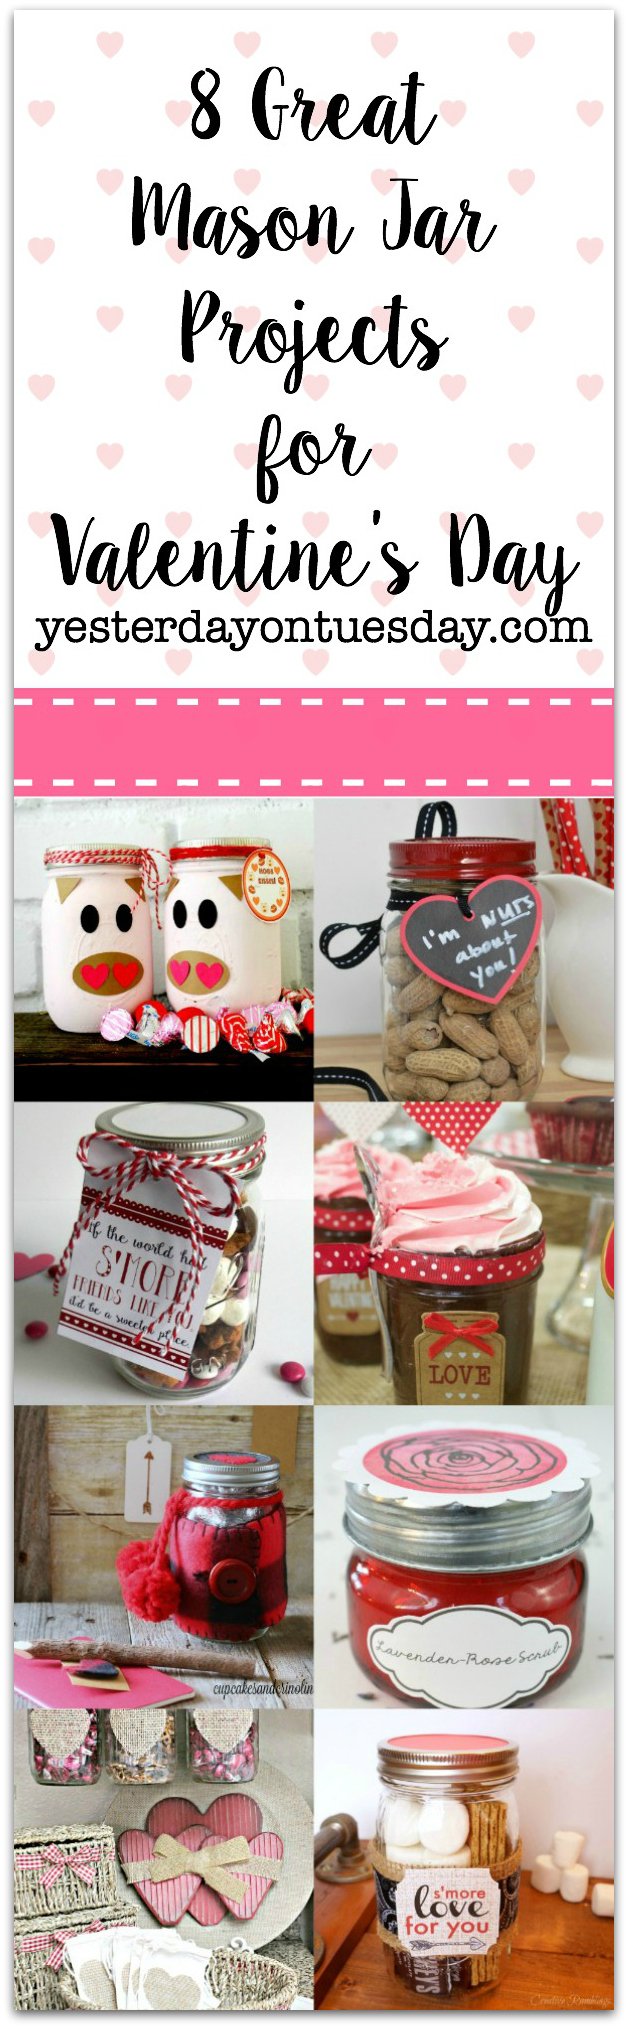 8 Great Mason Jar Projects For Valentine S Day Yesterday On Tuesday